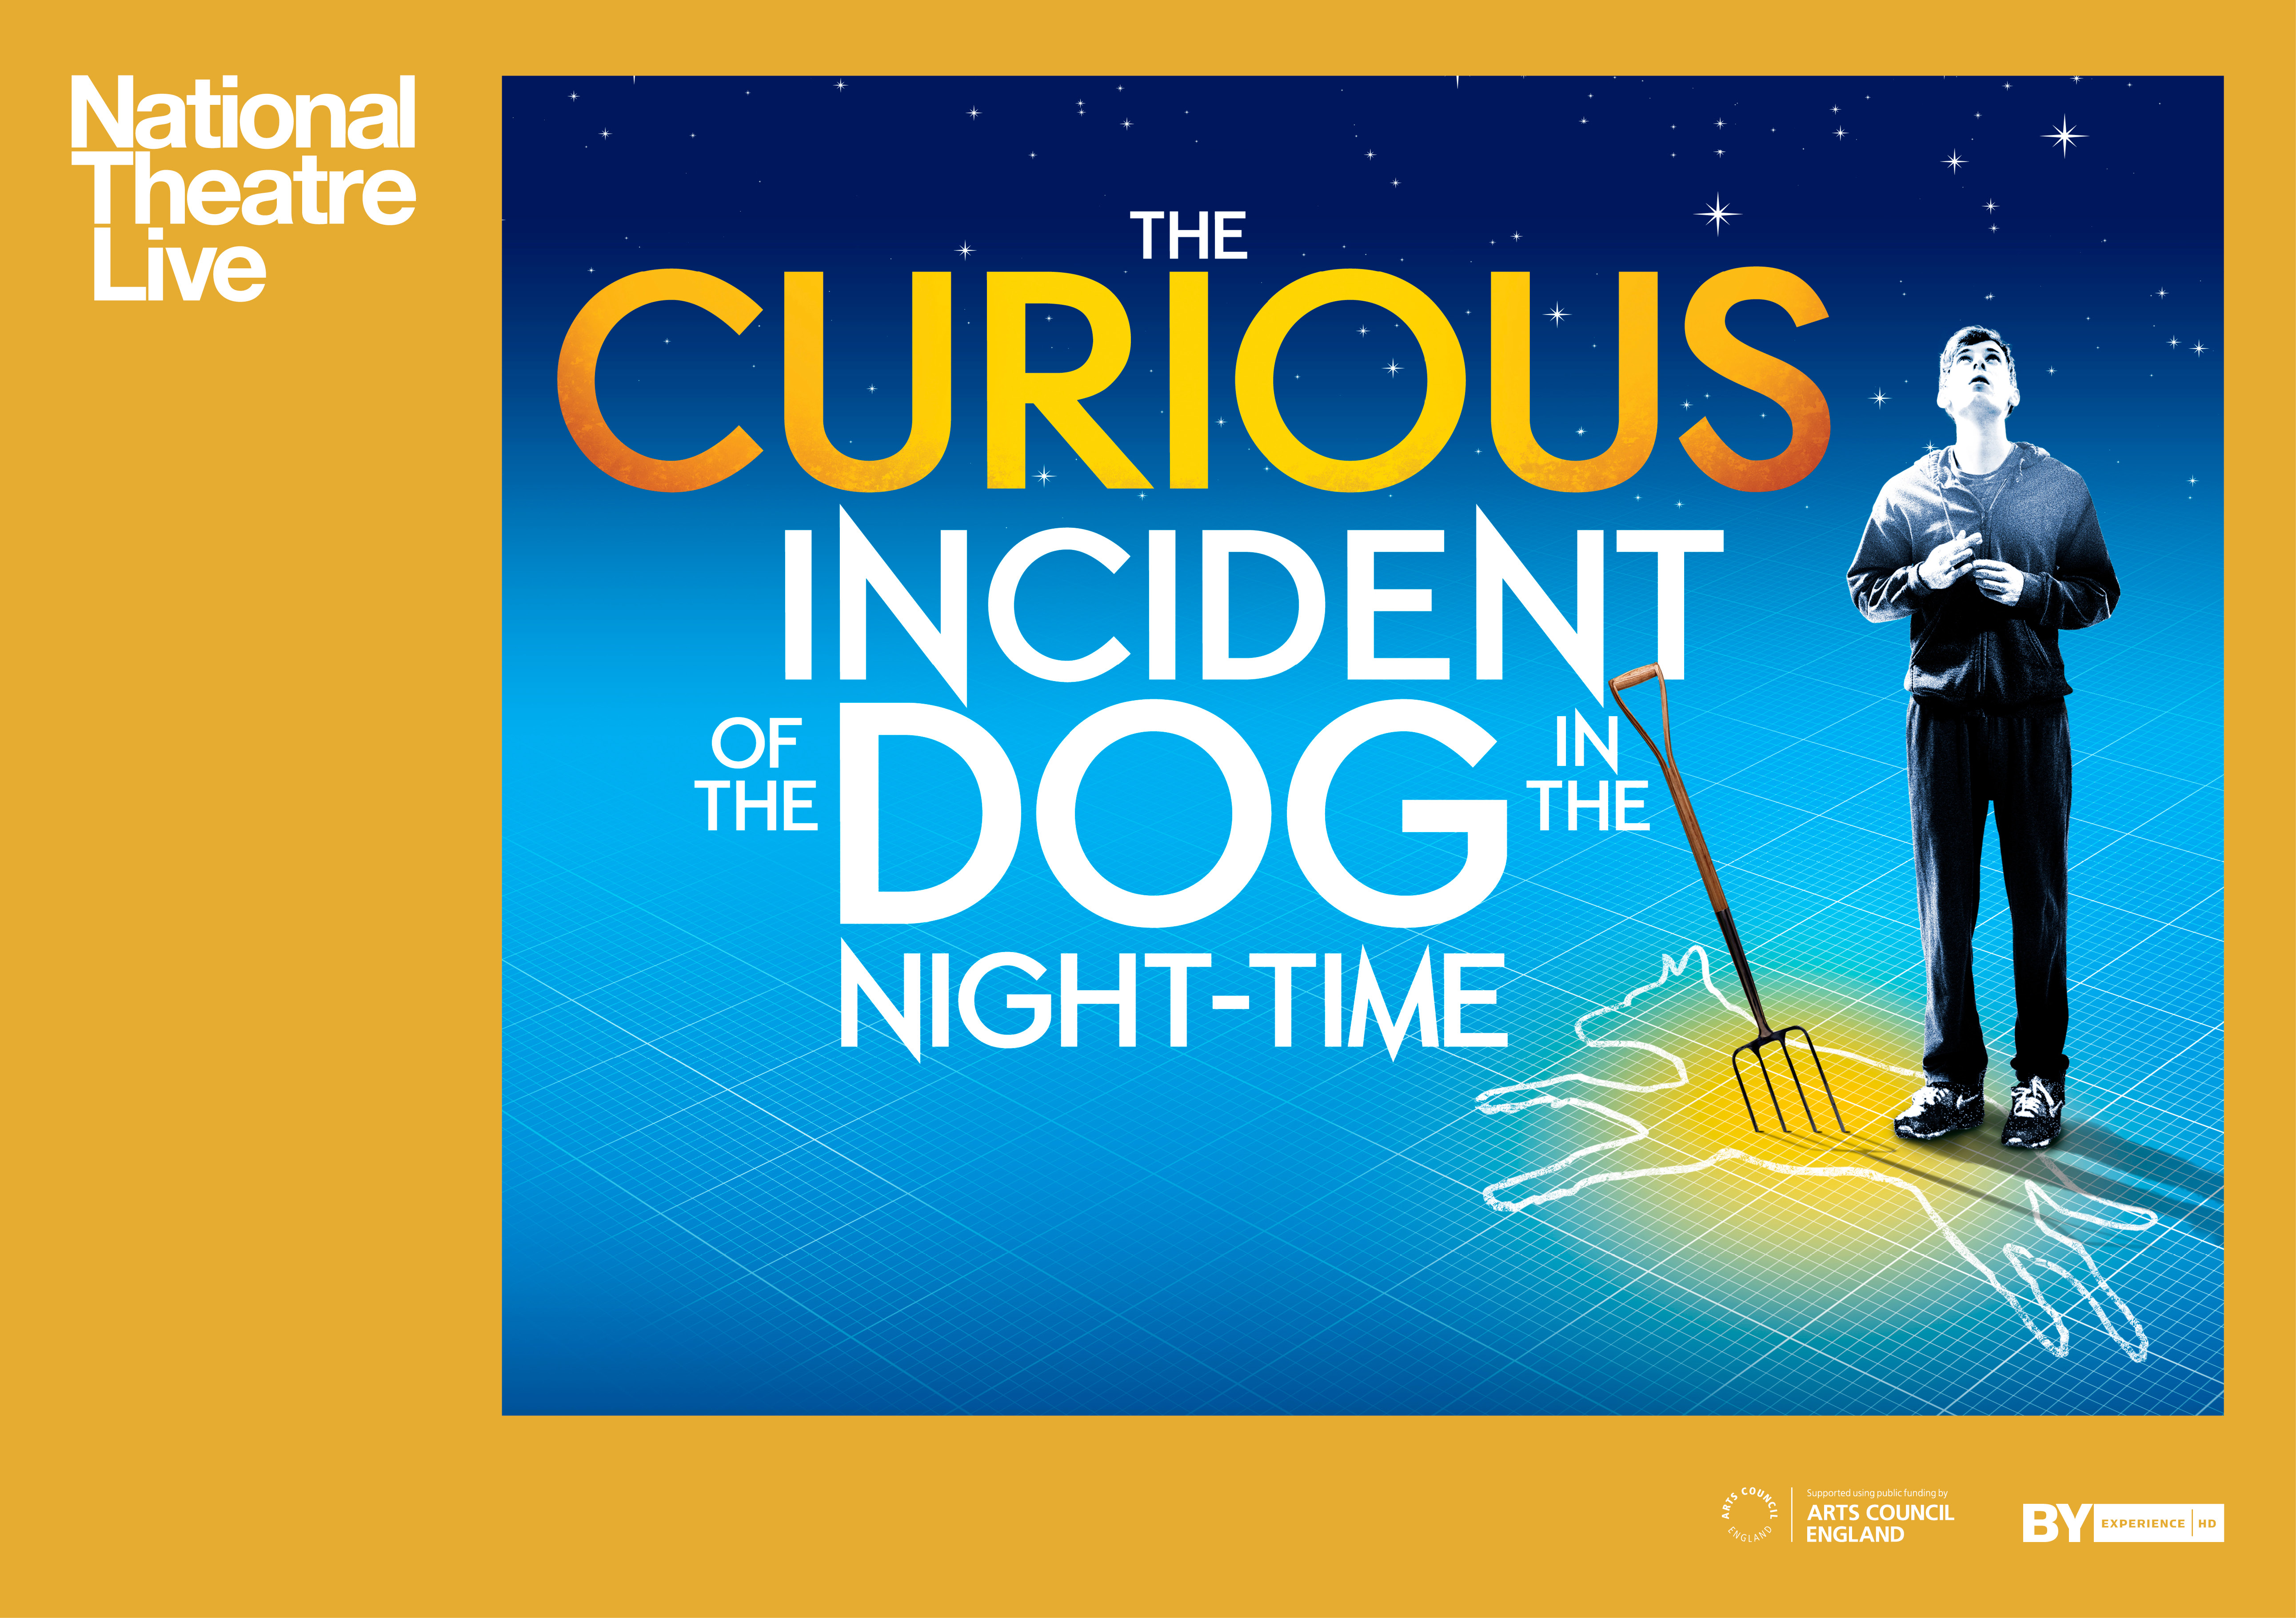 NTL 2018:  The Curious Incident of the Dog in the Night-Time